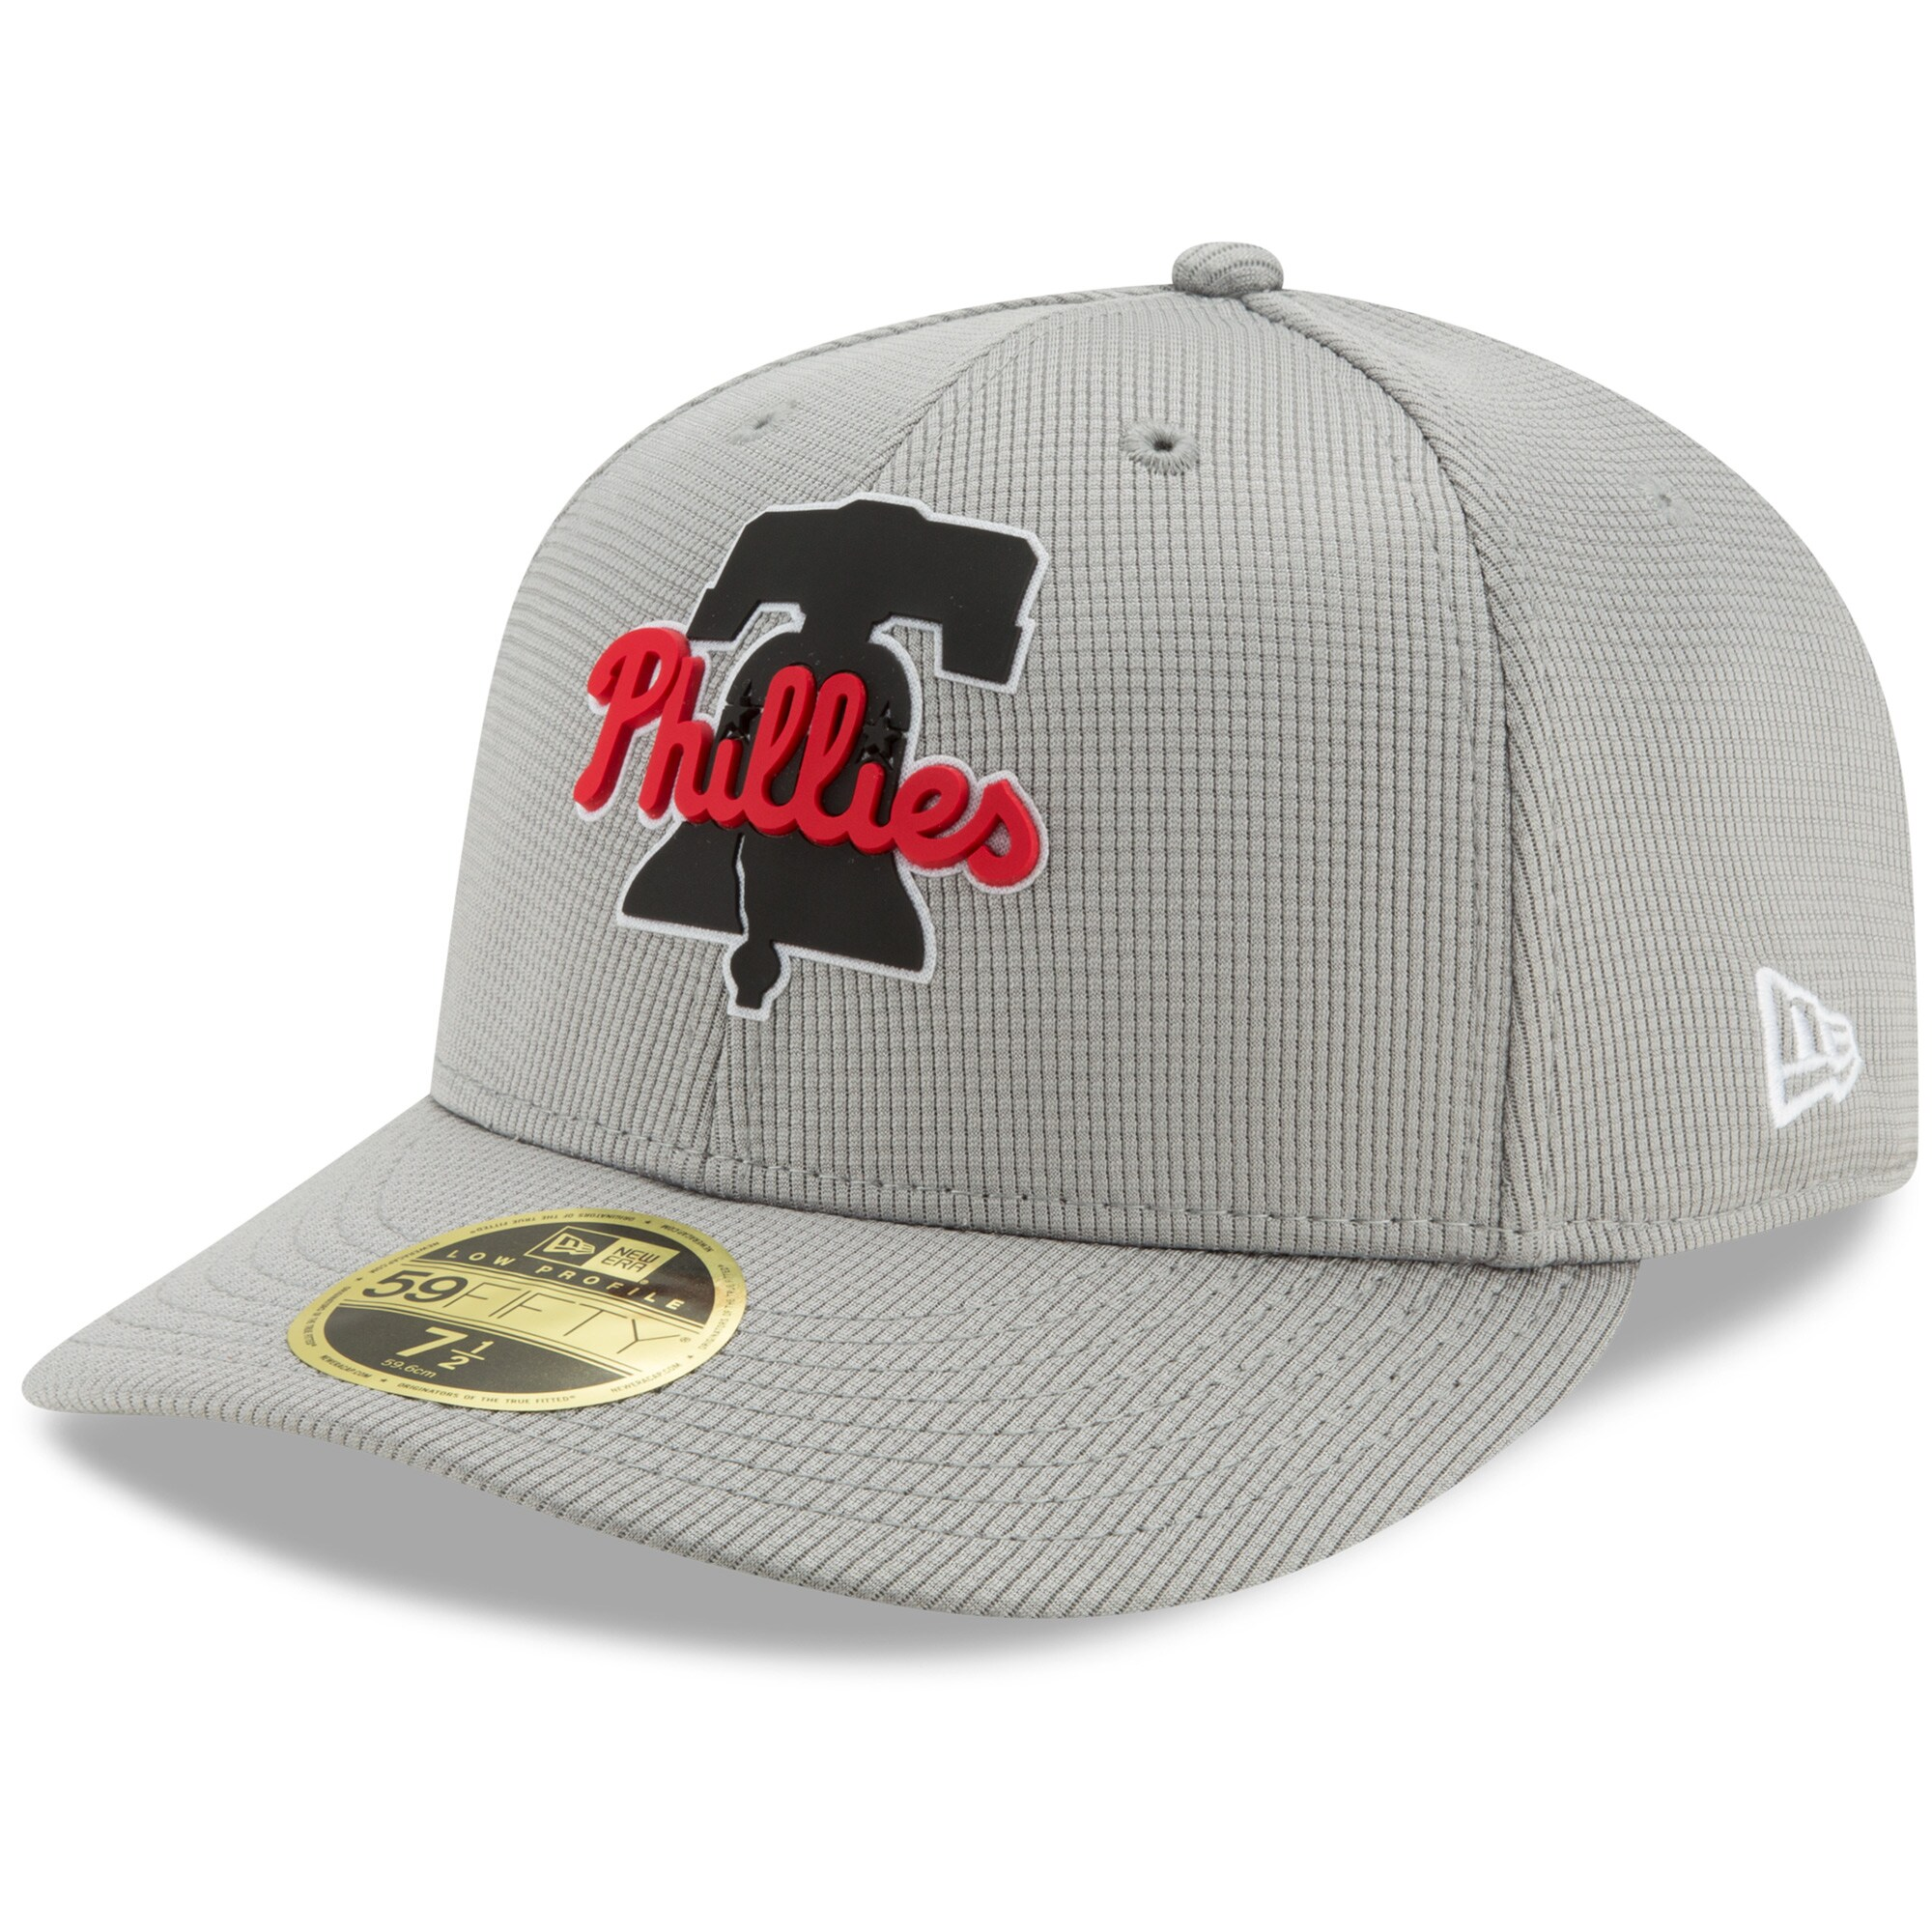 Philadelphia Phillies New Era Clubhouse Low Profile 59FIFTY Fitted Hat - Gray